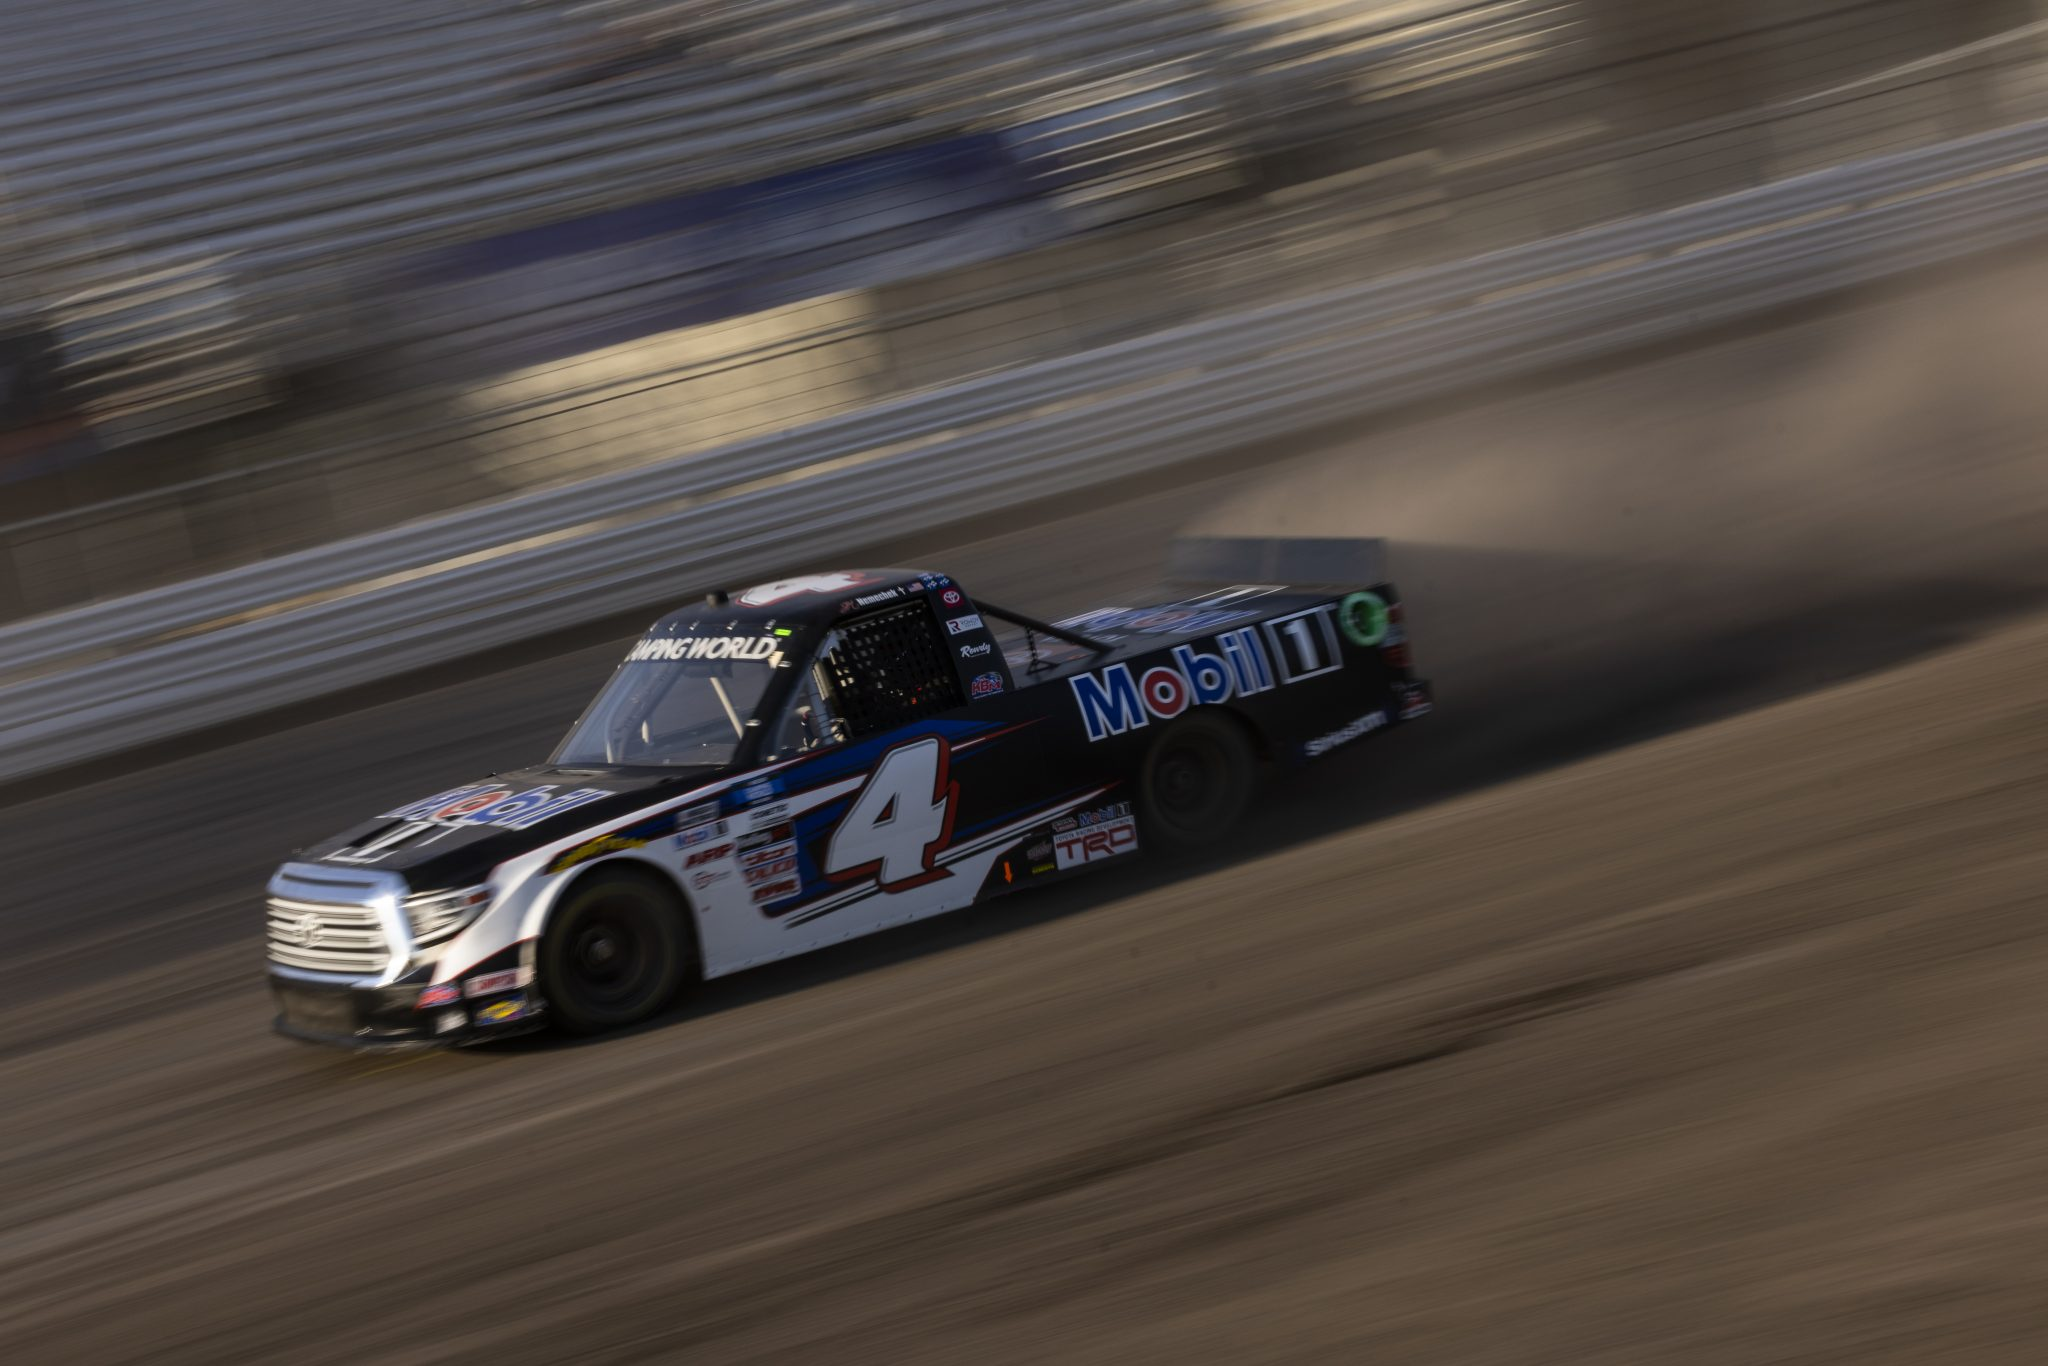 KNOXVILLE, IOWA - JULY 08: John Hunter Nemechek, driver of the #4 Mobil 1 Toyota, drives during practice for the NASCAR Camping World Truck Series Corn Belt 150 presented by Premier Chevy Dealers at Knoxville Raceway on July 08, 2021 in Knoxville, Iowa. (Photo by James Gilbert/Getty Images) | Getty Images